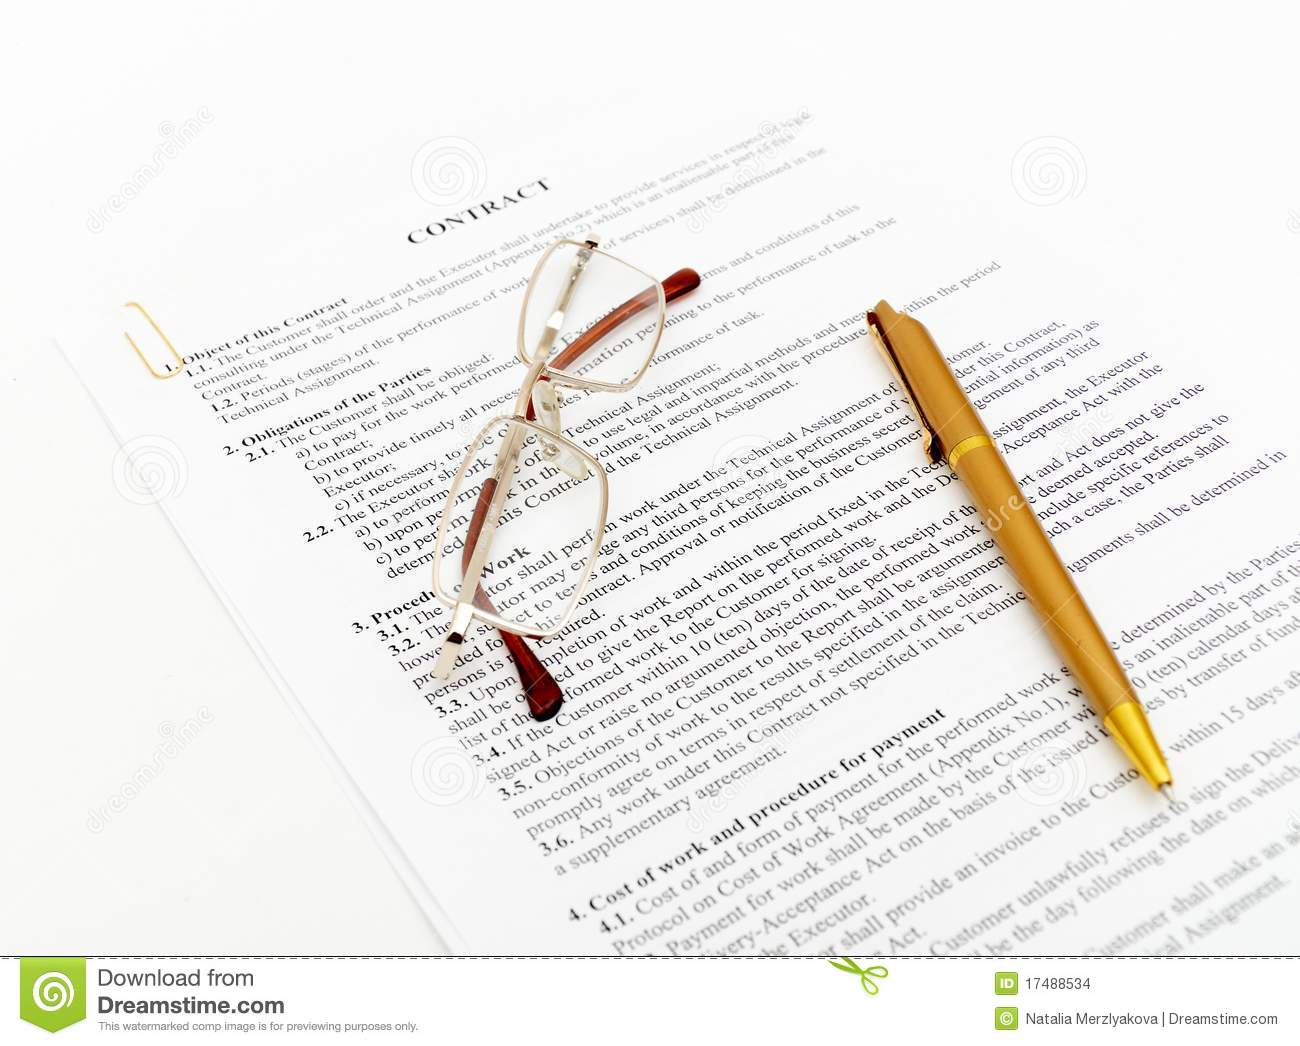 Contract Law Essays | Law Essays